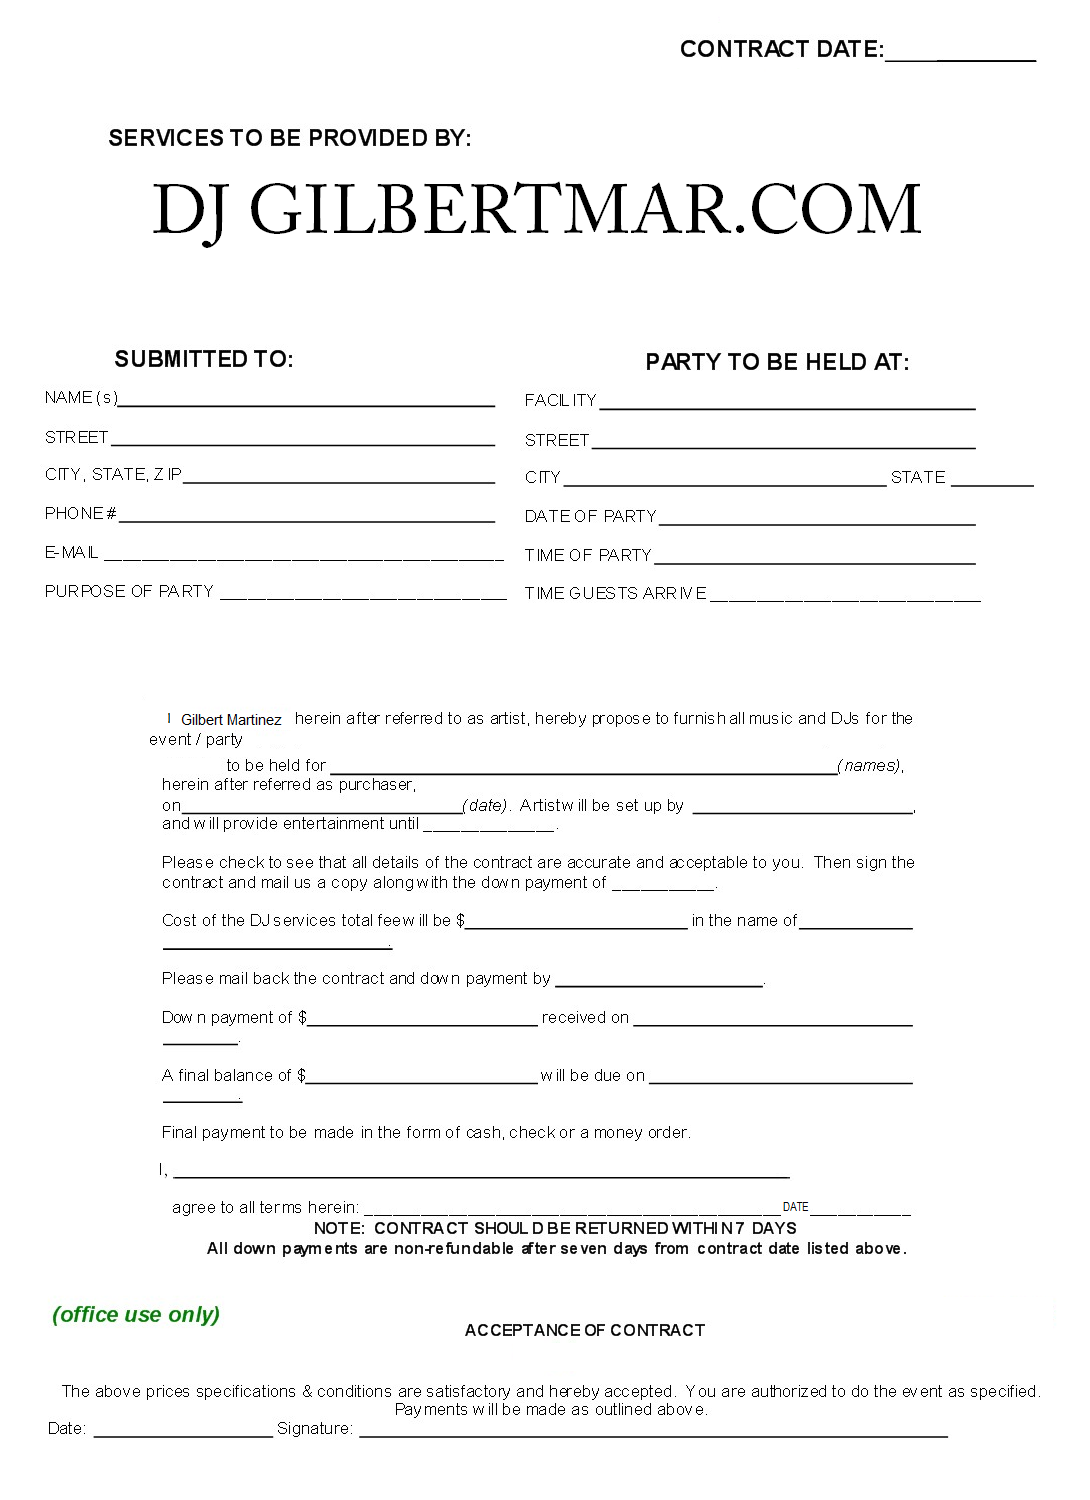 Dj Contract Template | NON COMPETE AGREEMENT - sample dj contract ...